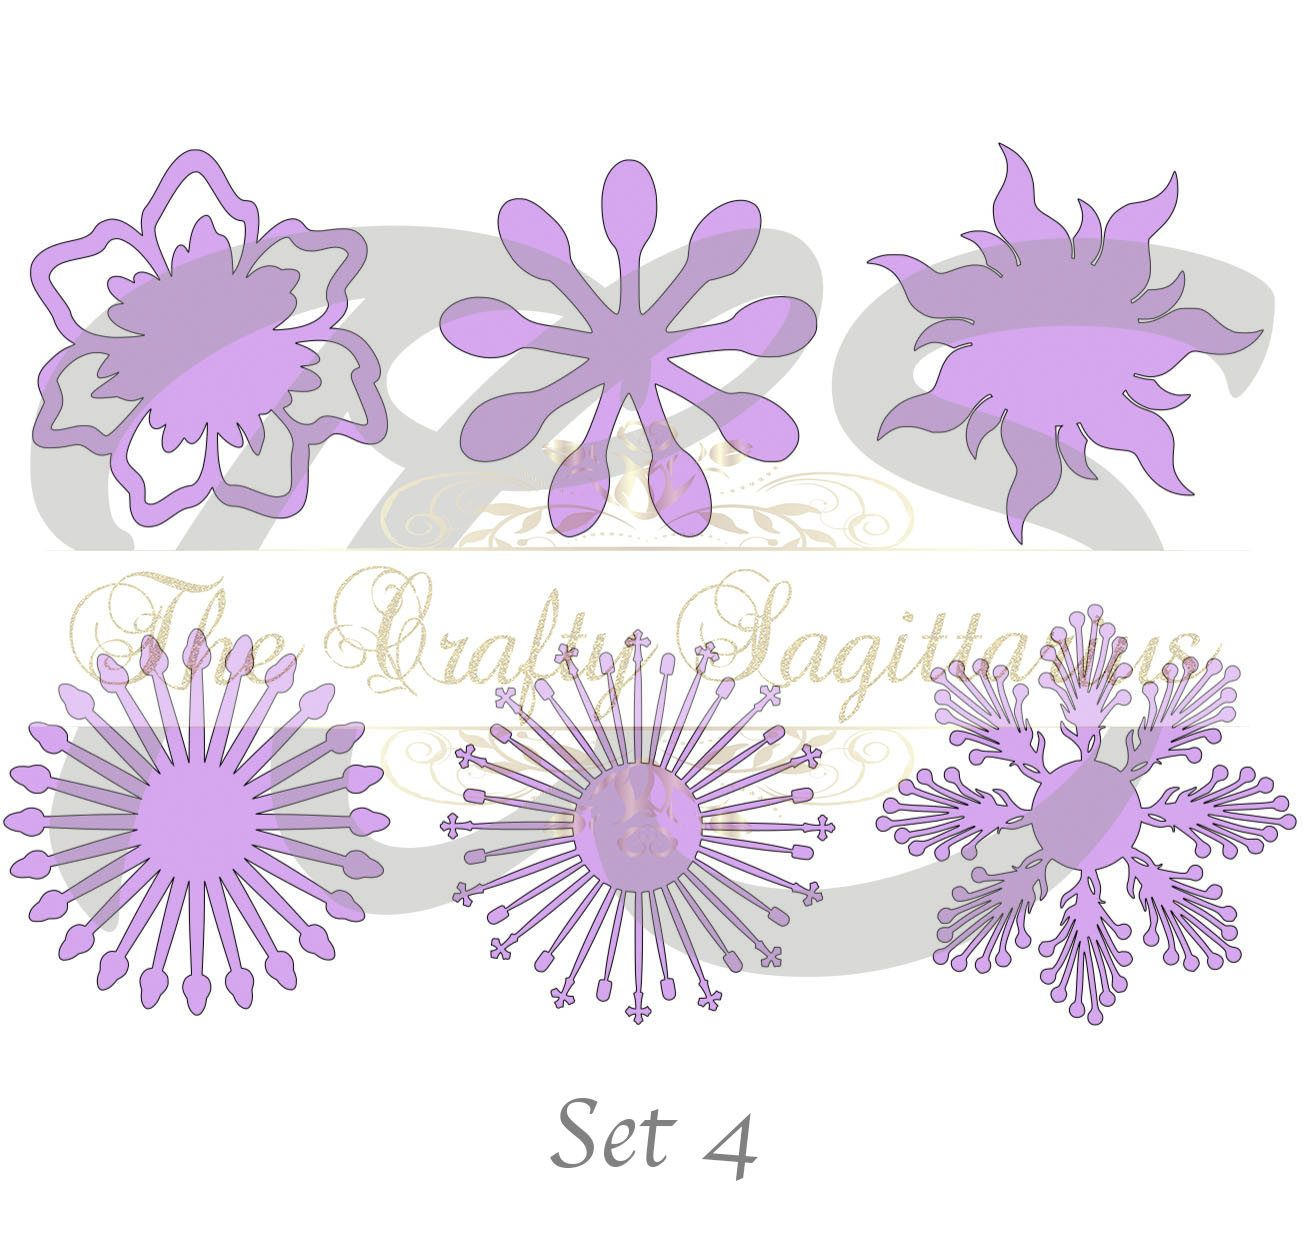 Svg set 4 6 different flat center for paper flowers machine use svg set 4 6 different flat center for paper flowers machine use only cricut and silhouette diy and handmade giant paper flower templates mightylinksfo